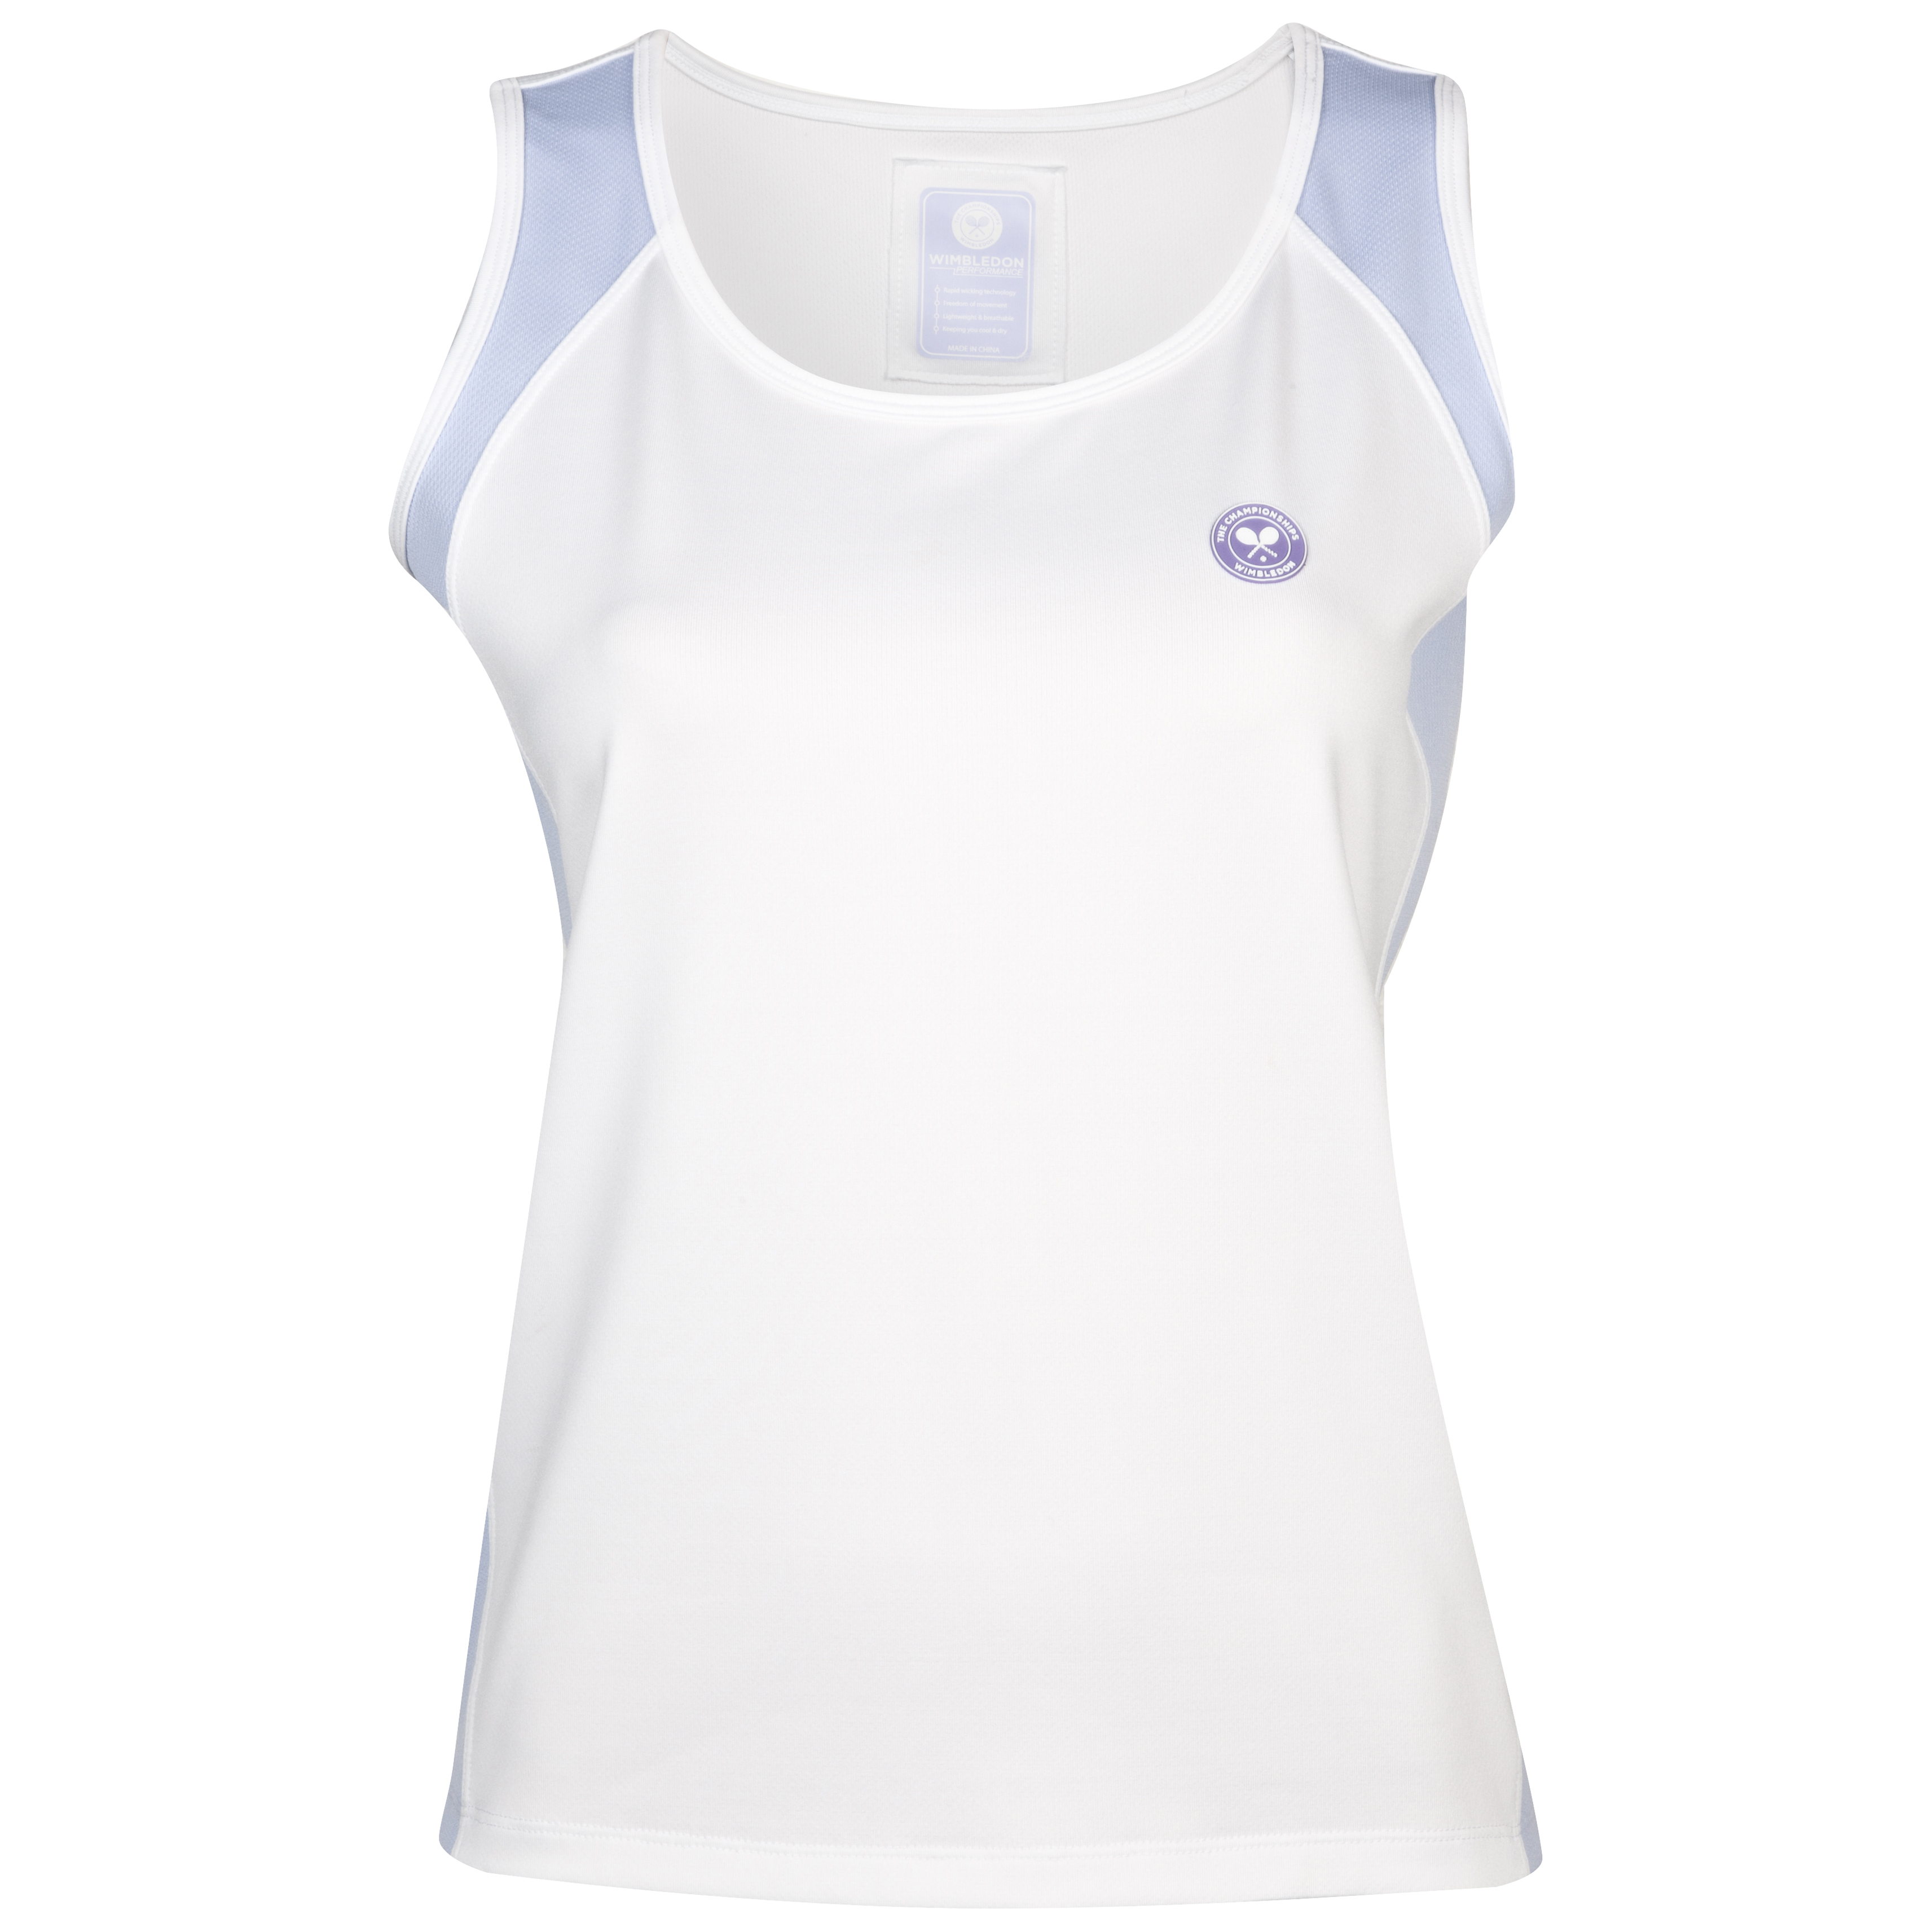 Wimbledon Sleeveless Top - Ladies - White